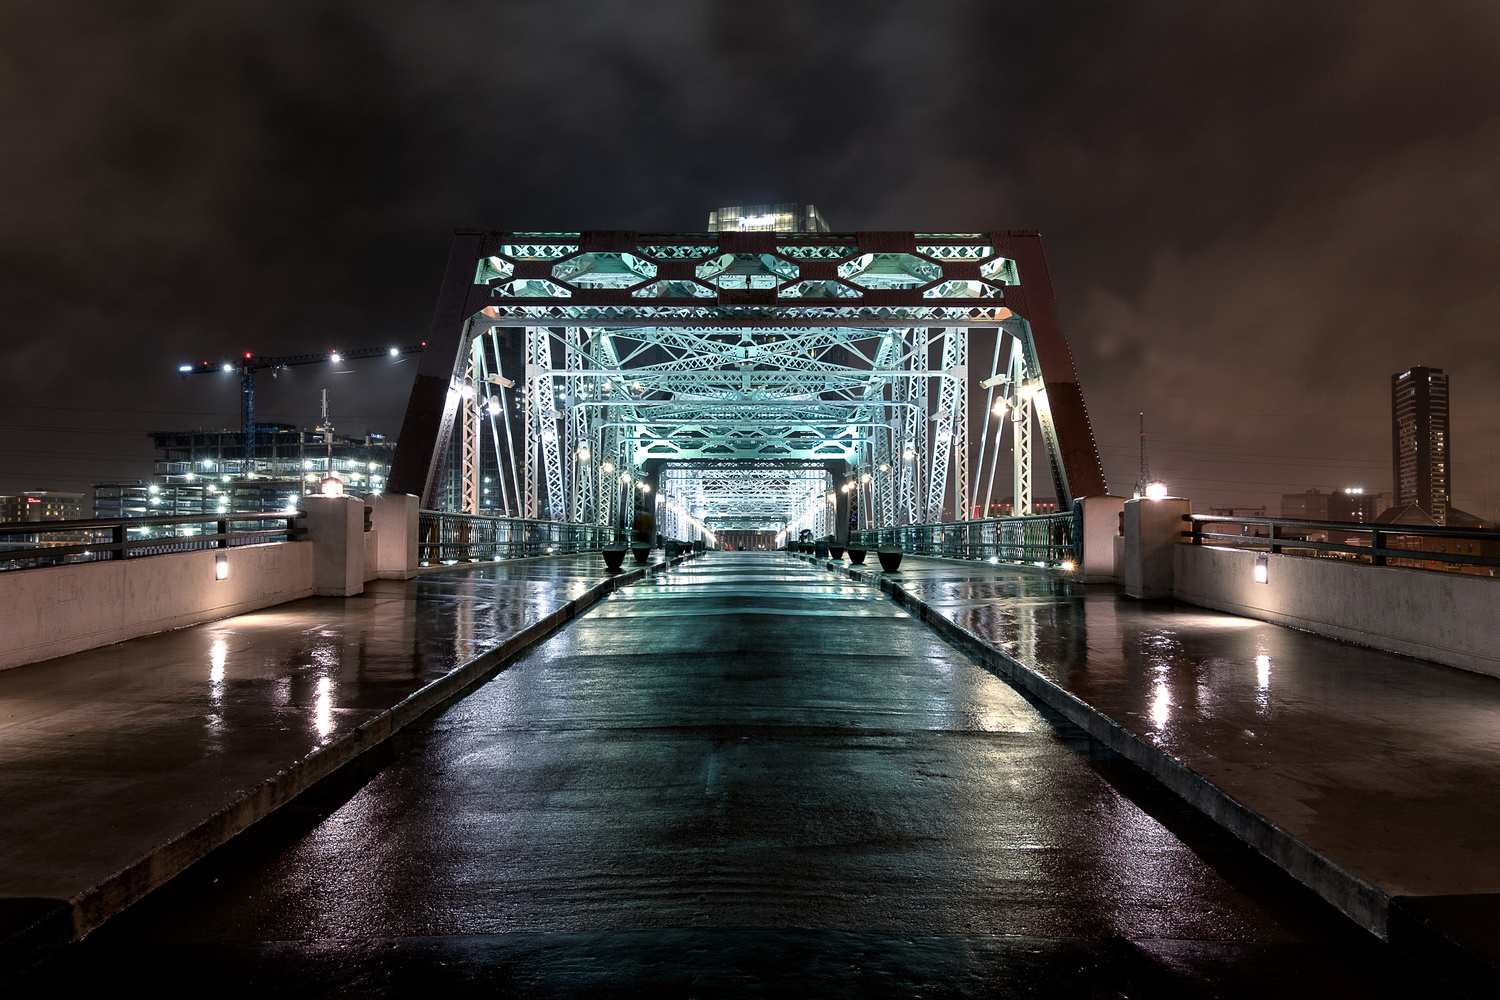 Drenched Bridge by Quinn Kananack